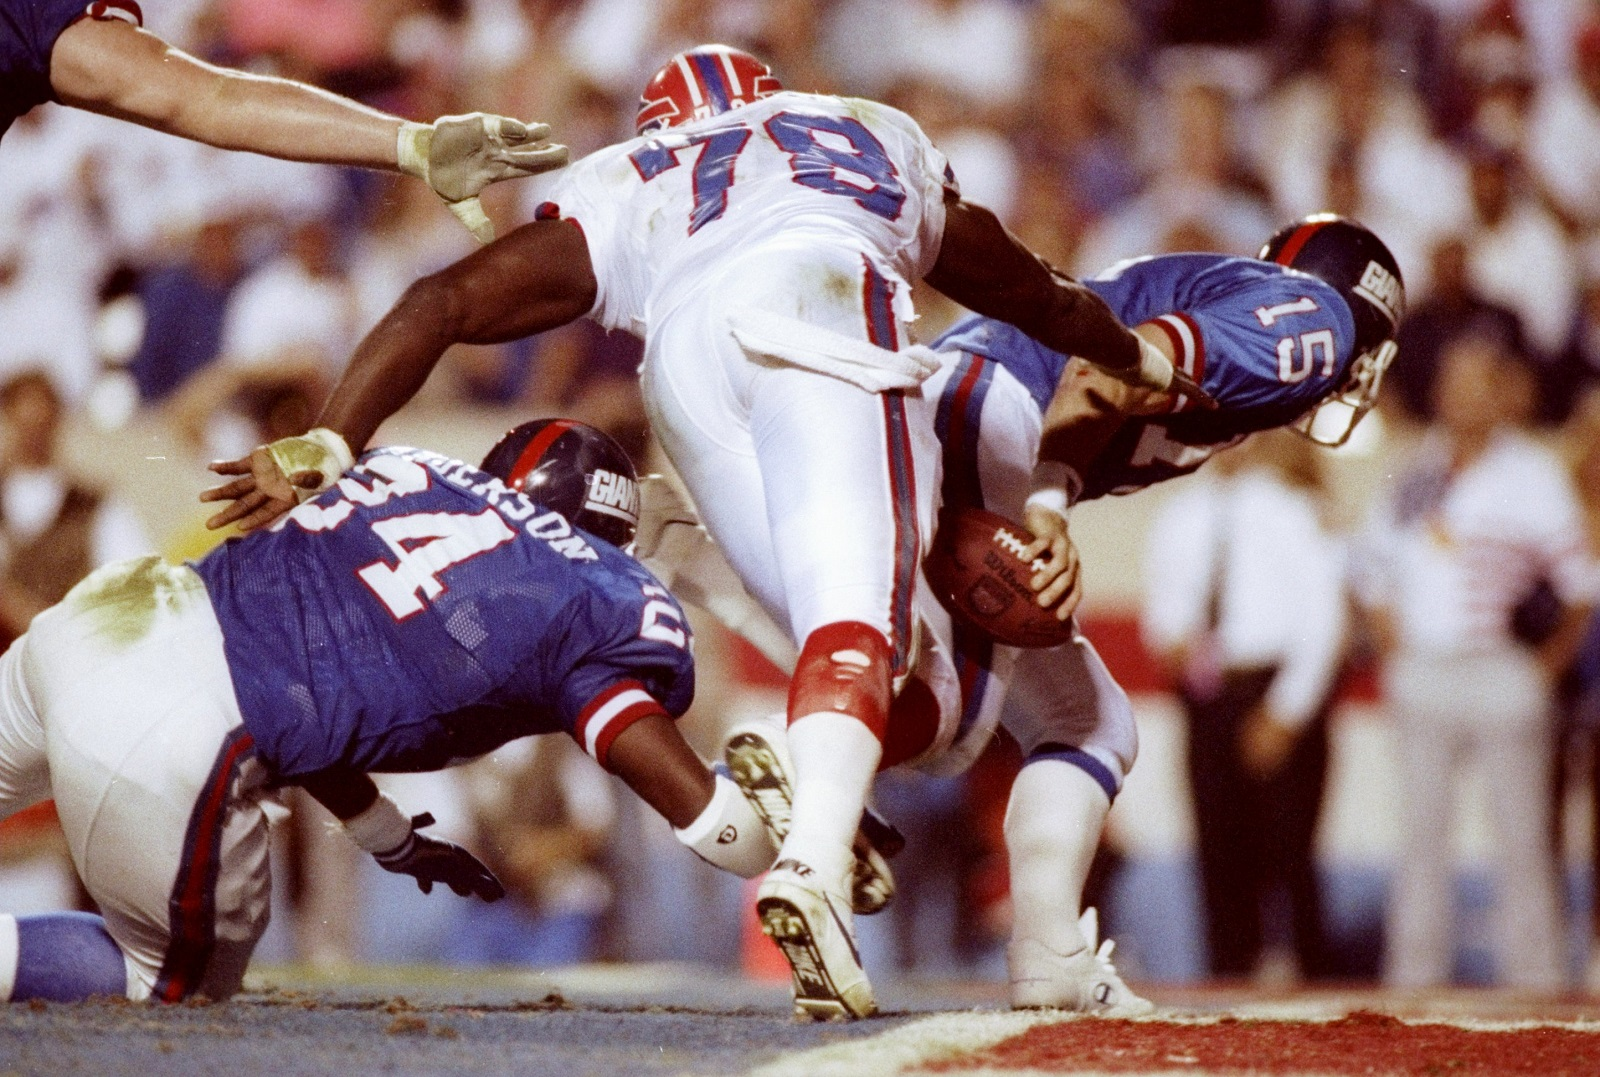 Bruce Smith nearly ripped the ball loose from Giants QB Jeff Hostetler in Super Bowl XXV. (Getty Images)